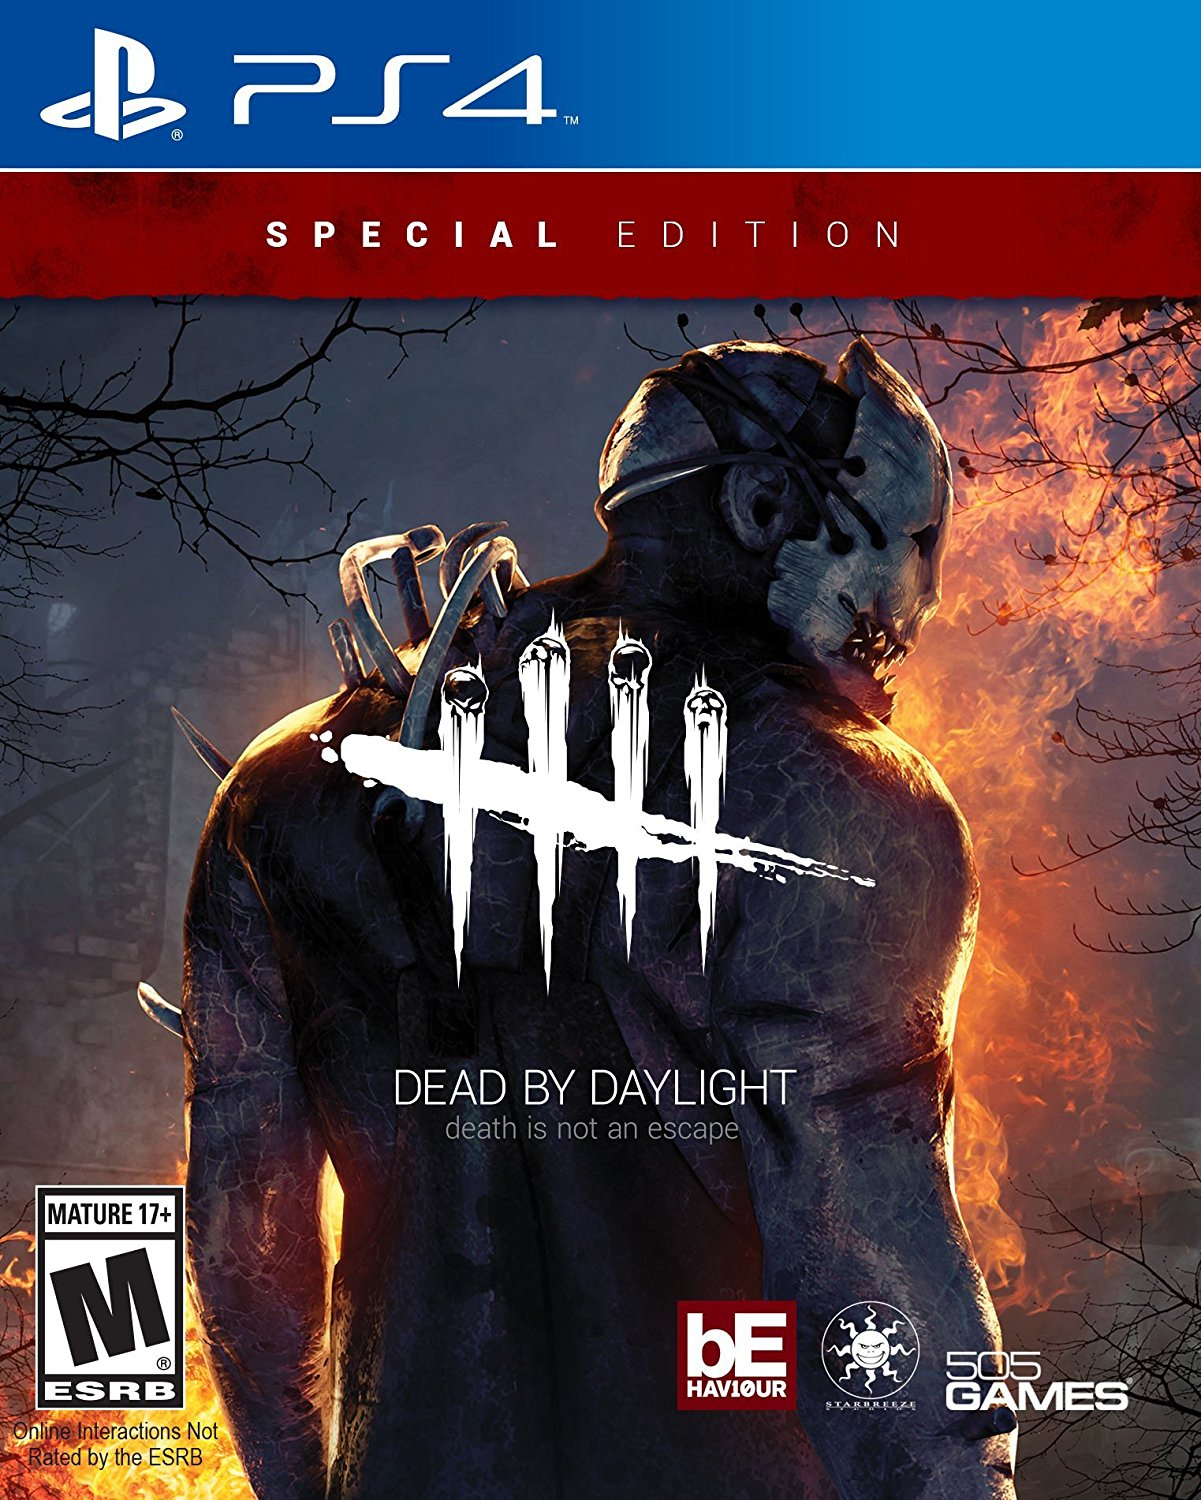 related topicsdead by daylighthalloweenmichael myers - Halloween Video Game Michael Myers